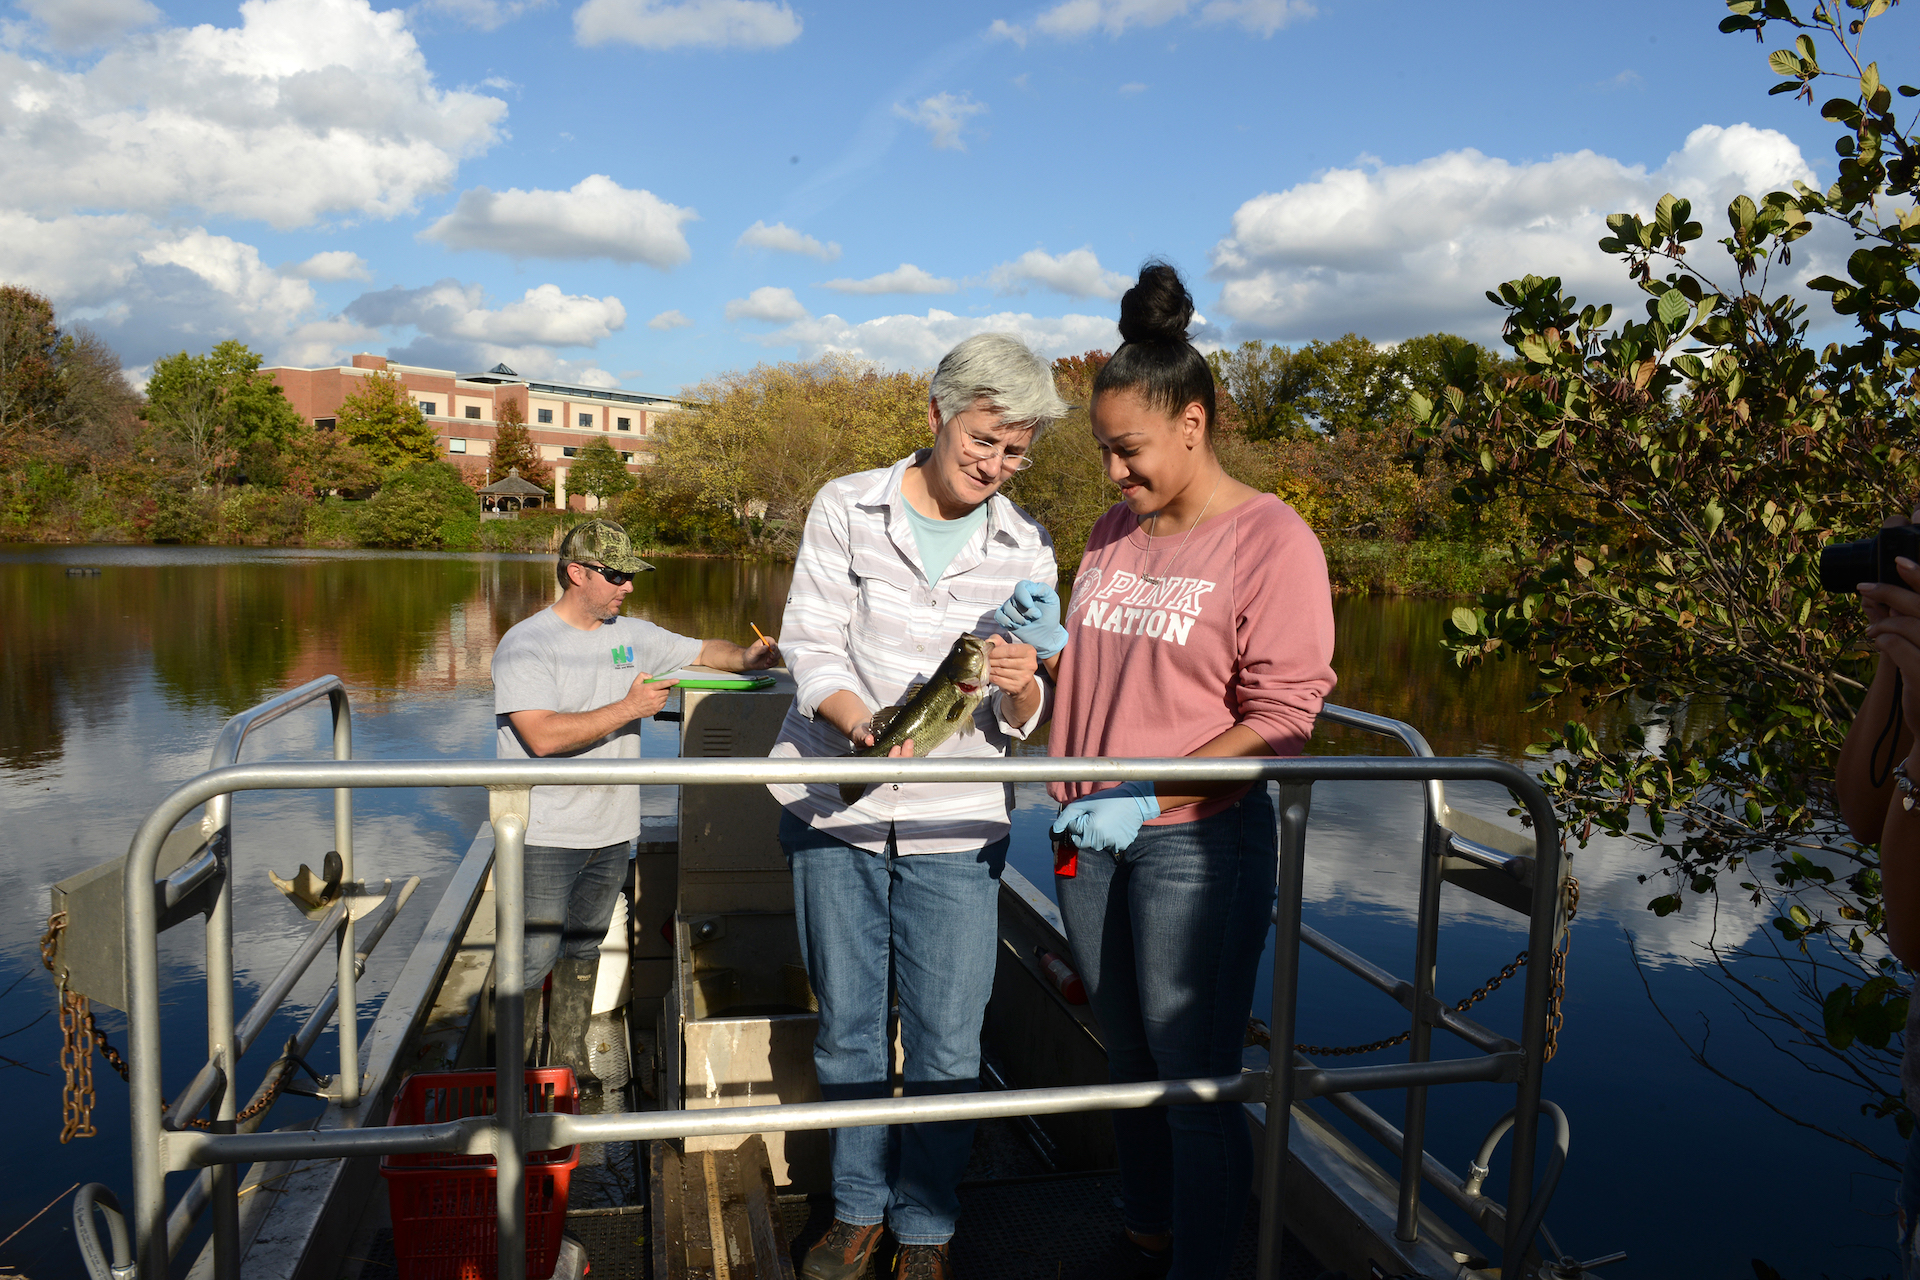 Student and faculty on a boat on Centennial Lake doing research